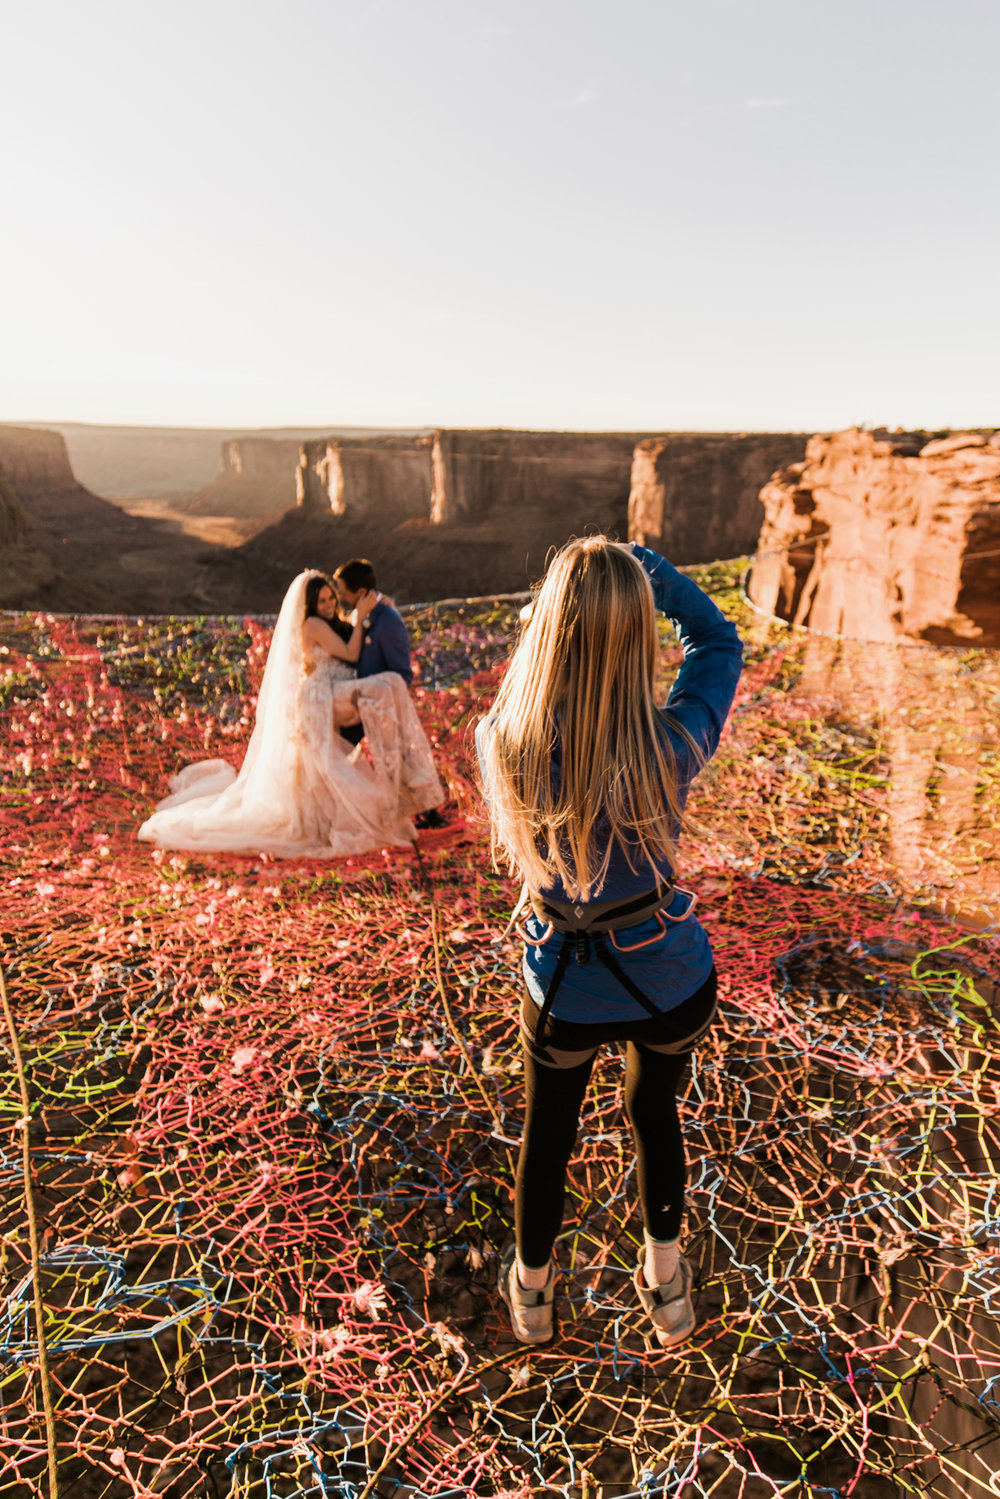 photographing a wedding on a spacenet in moab, utah | utah and california adventure elopement photographers | the hearnes adventure photography | www.thehearnes.com